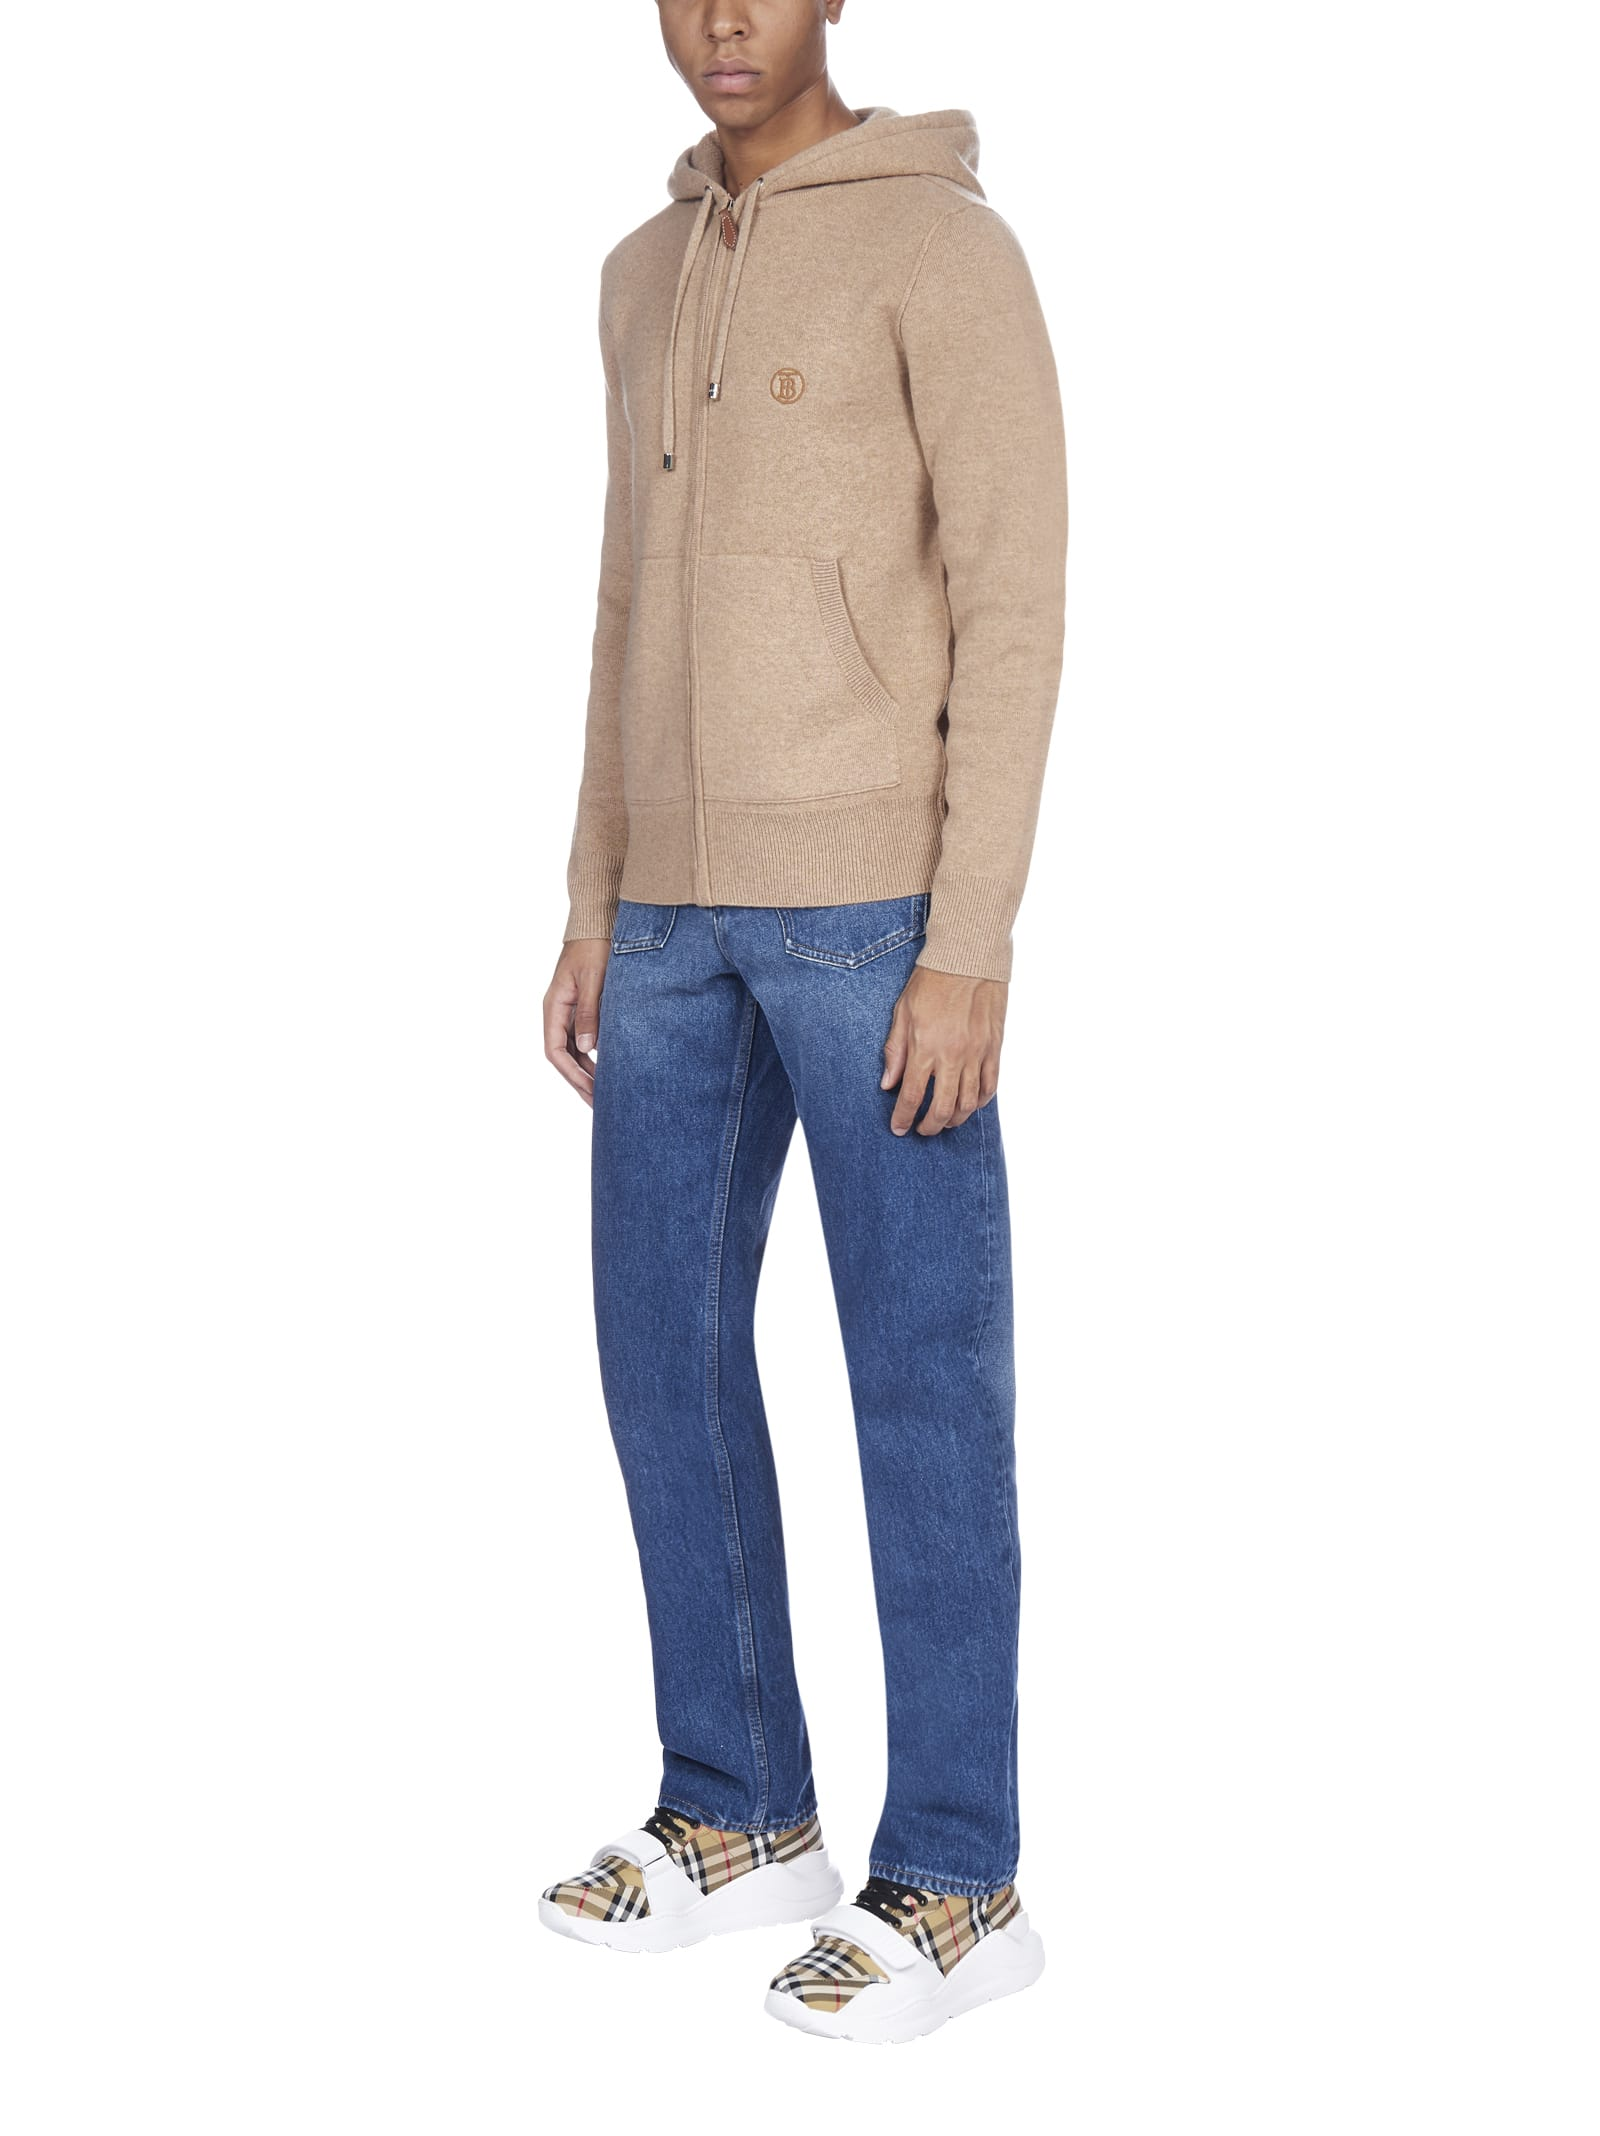 Burberry Lindley Cashmere Sipped Fleece